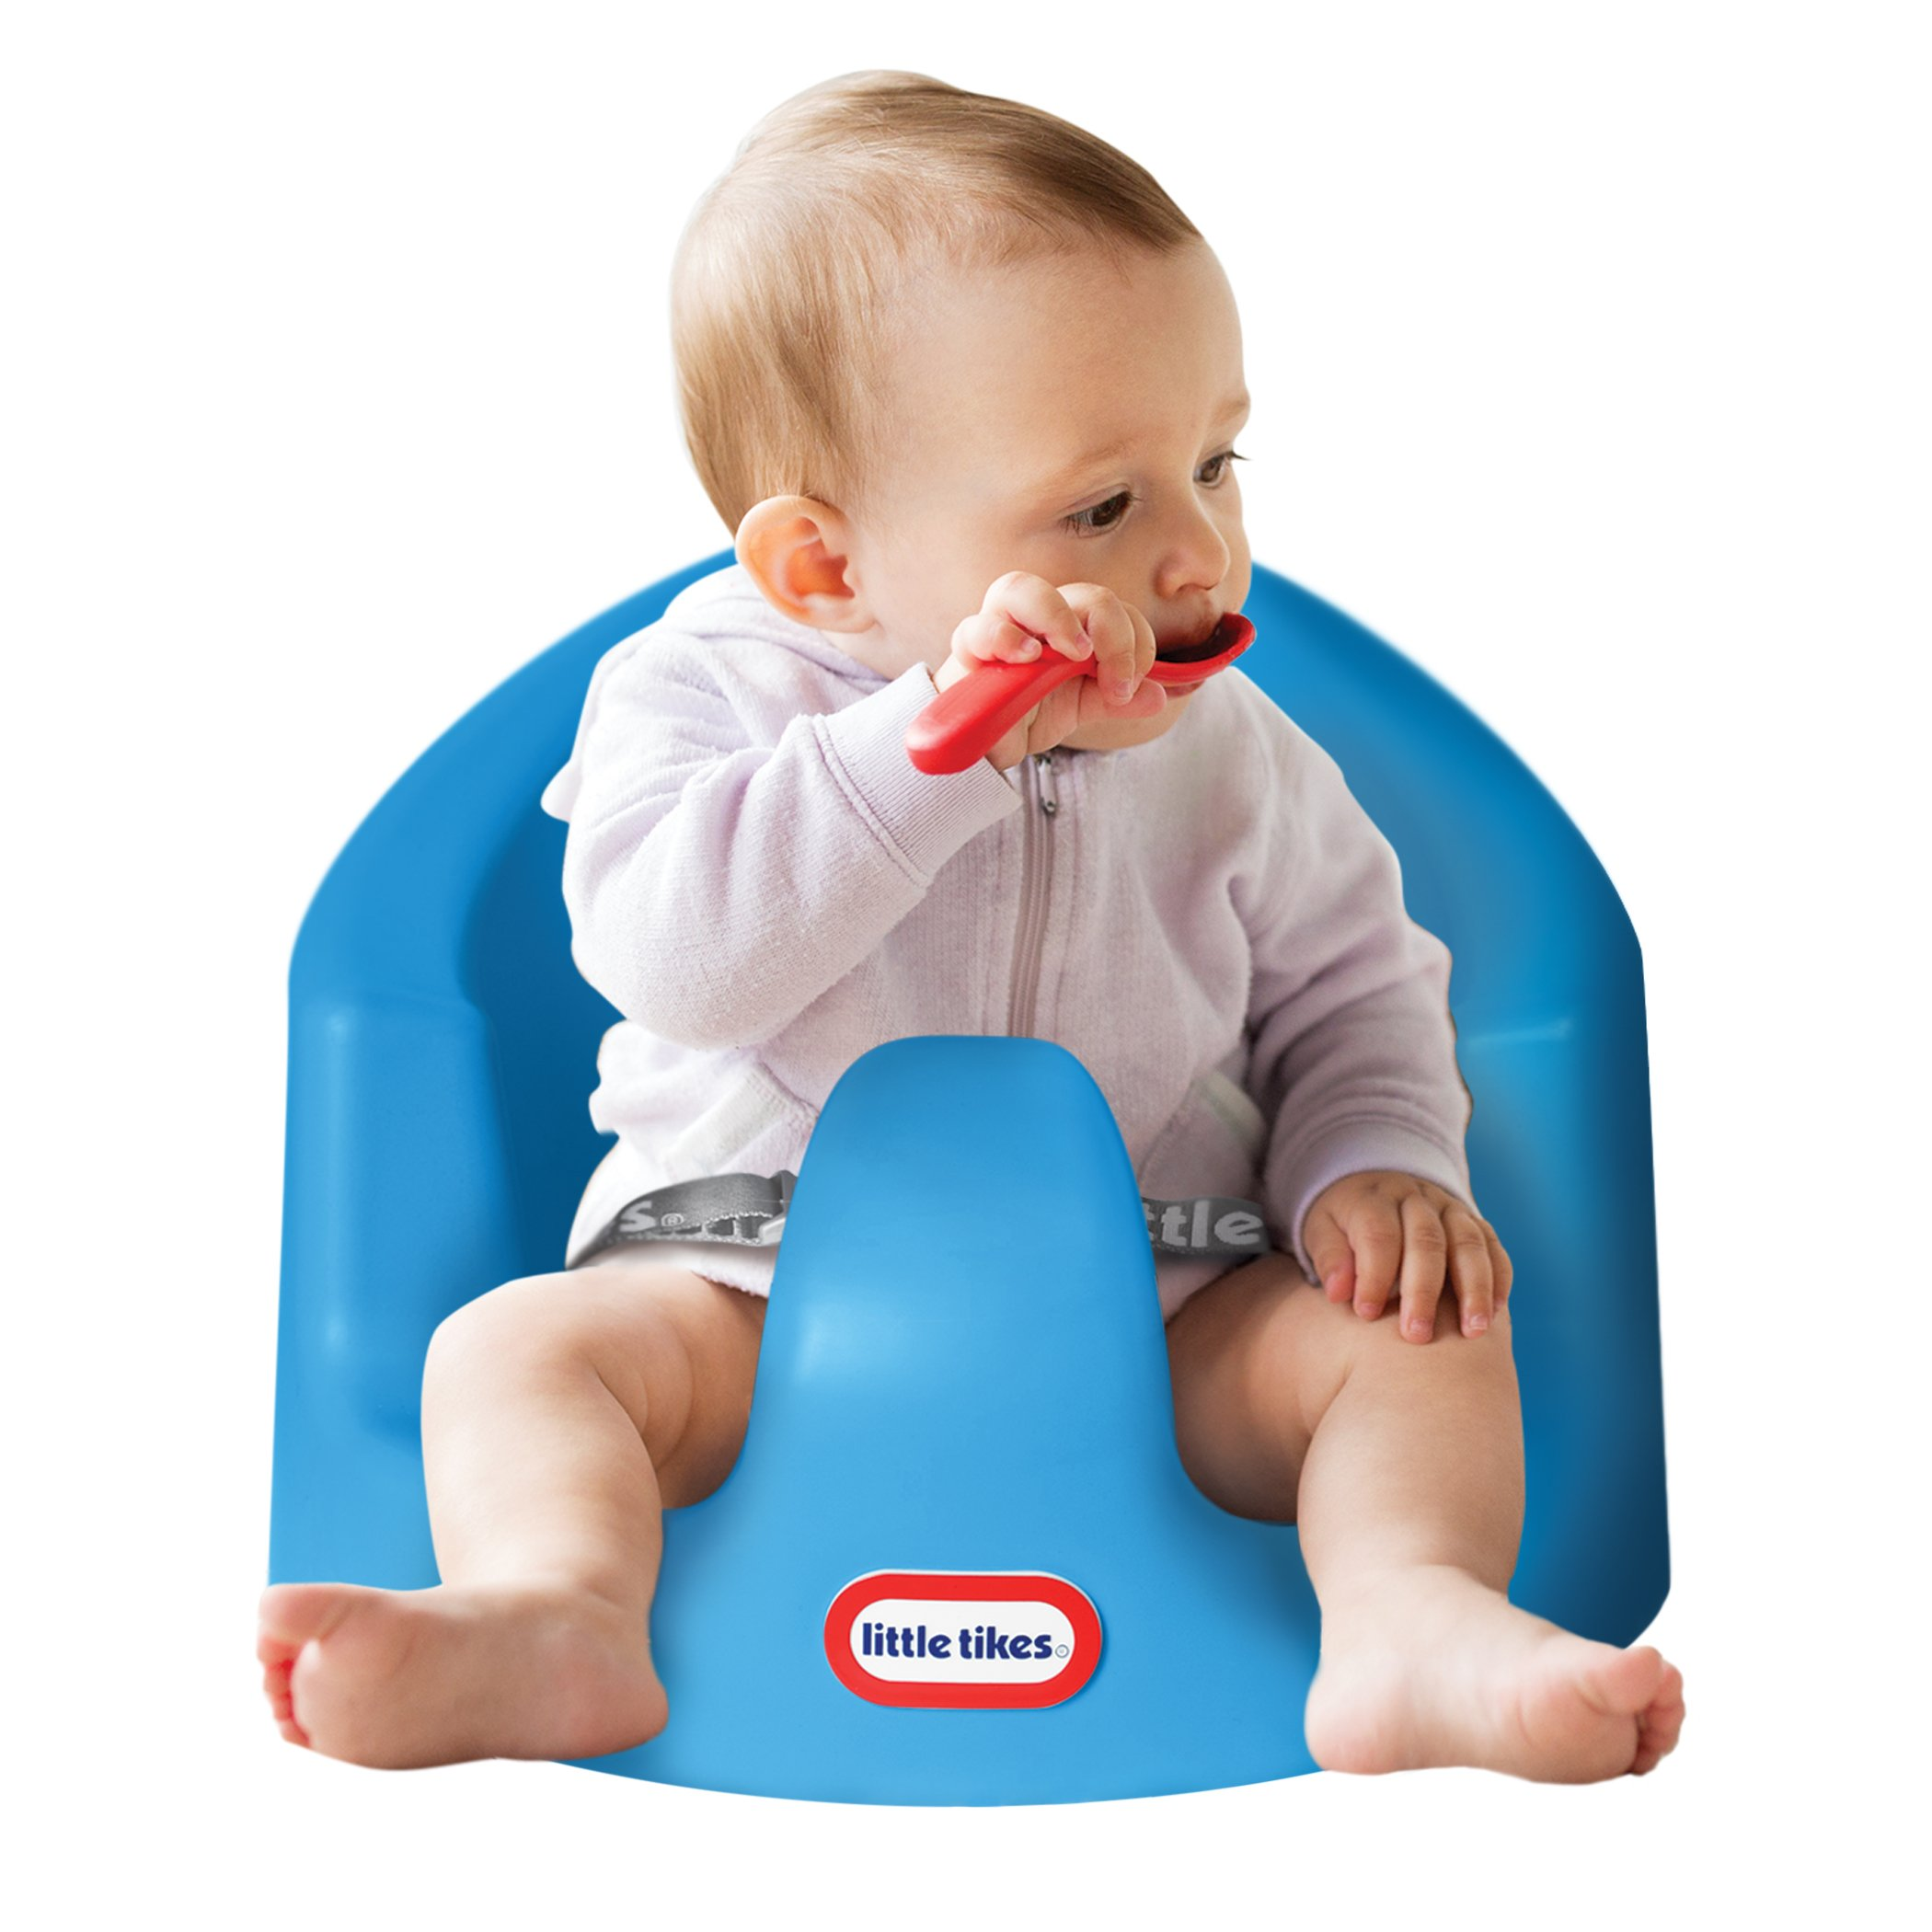 Amazon.com : Little Tikes My First Seat Baby Infant Foam Floor Seat ...